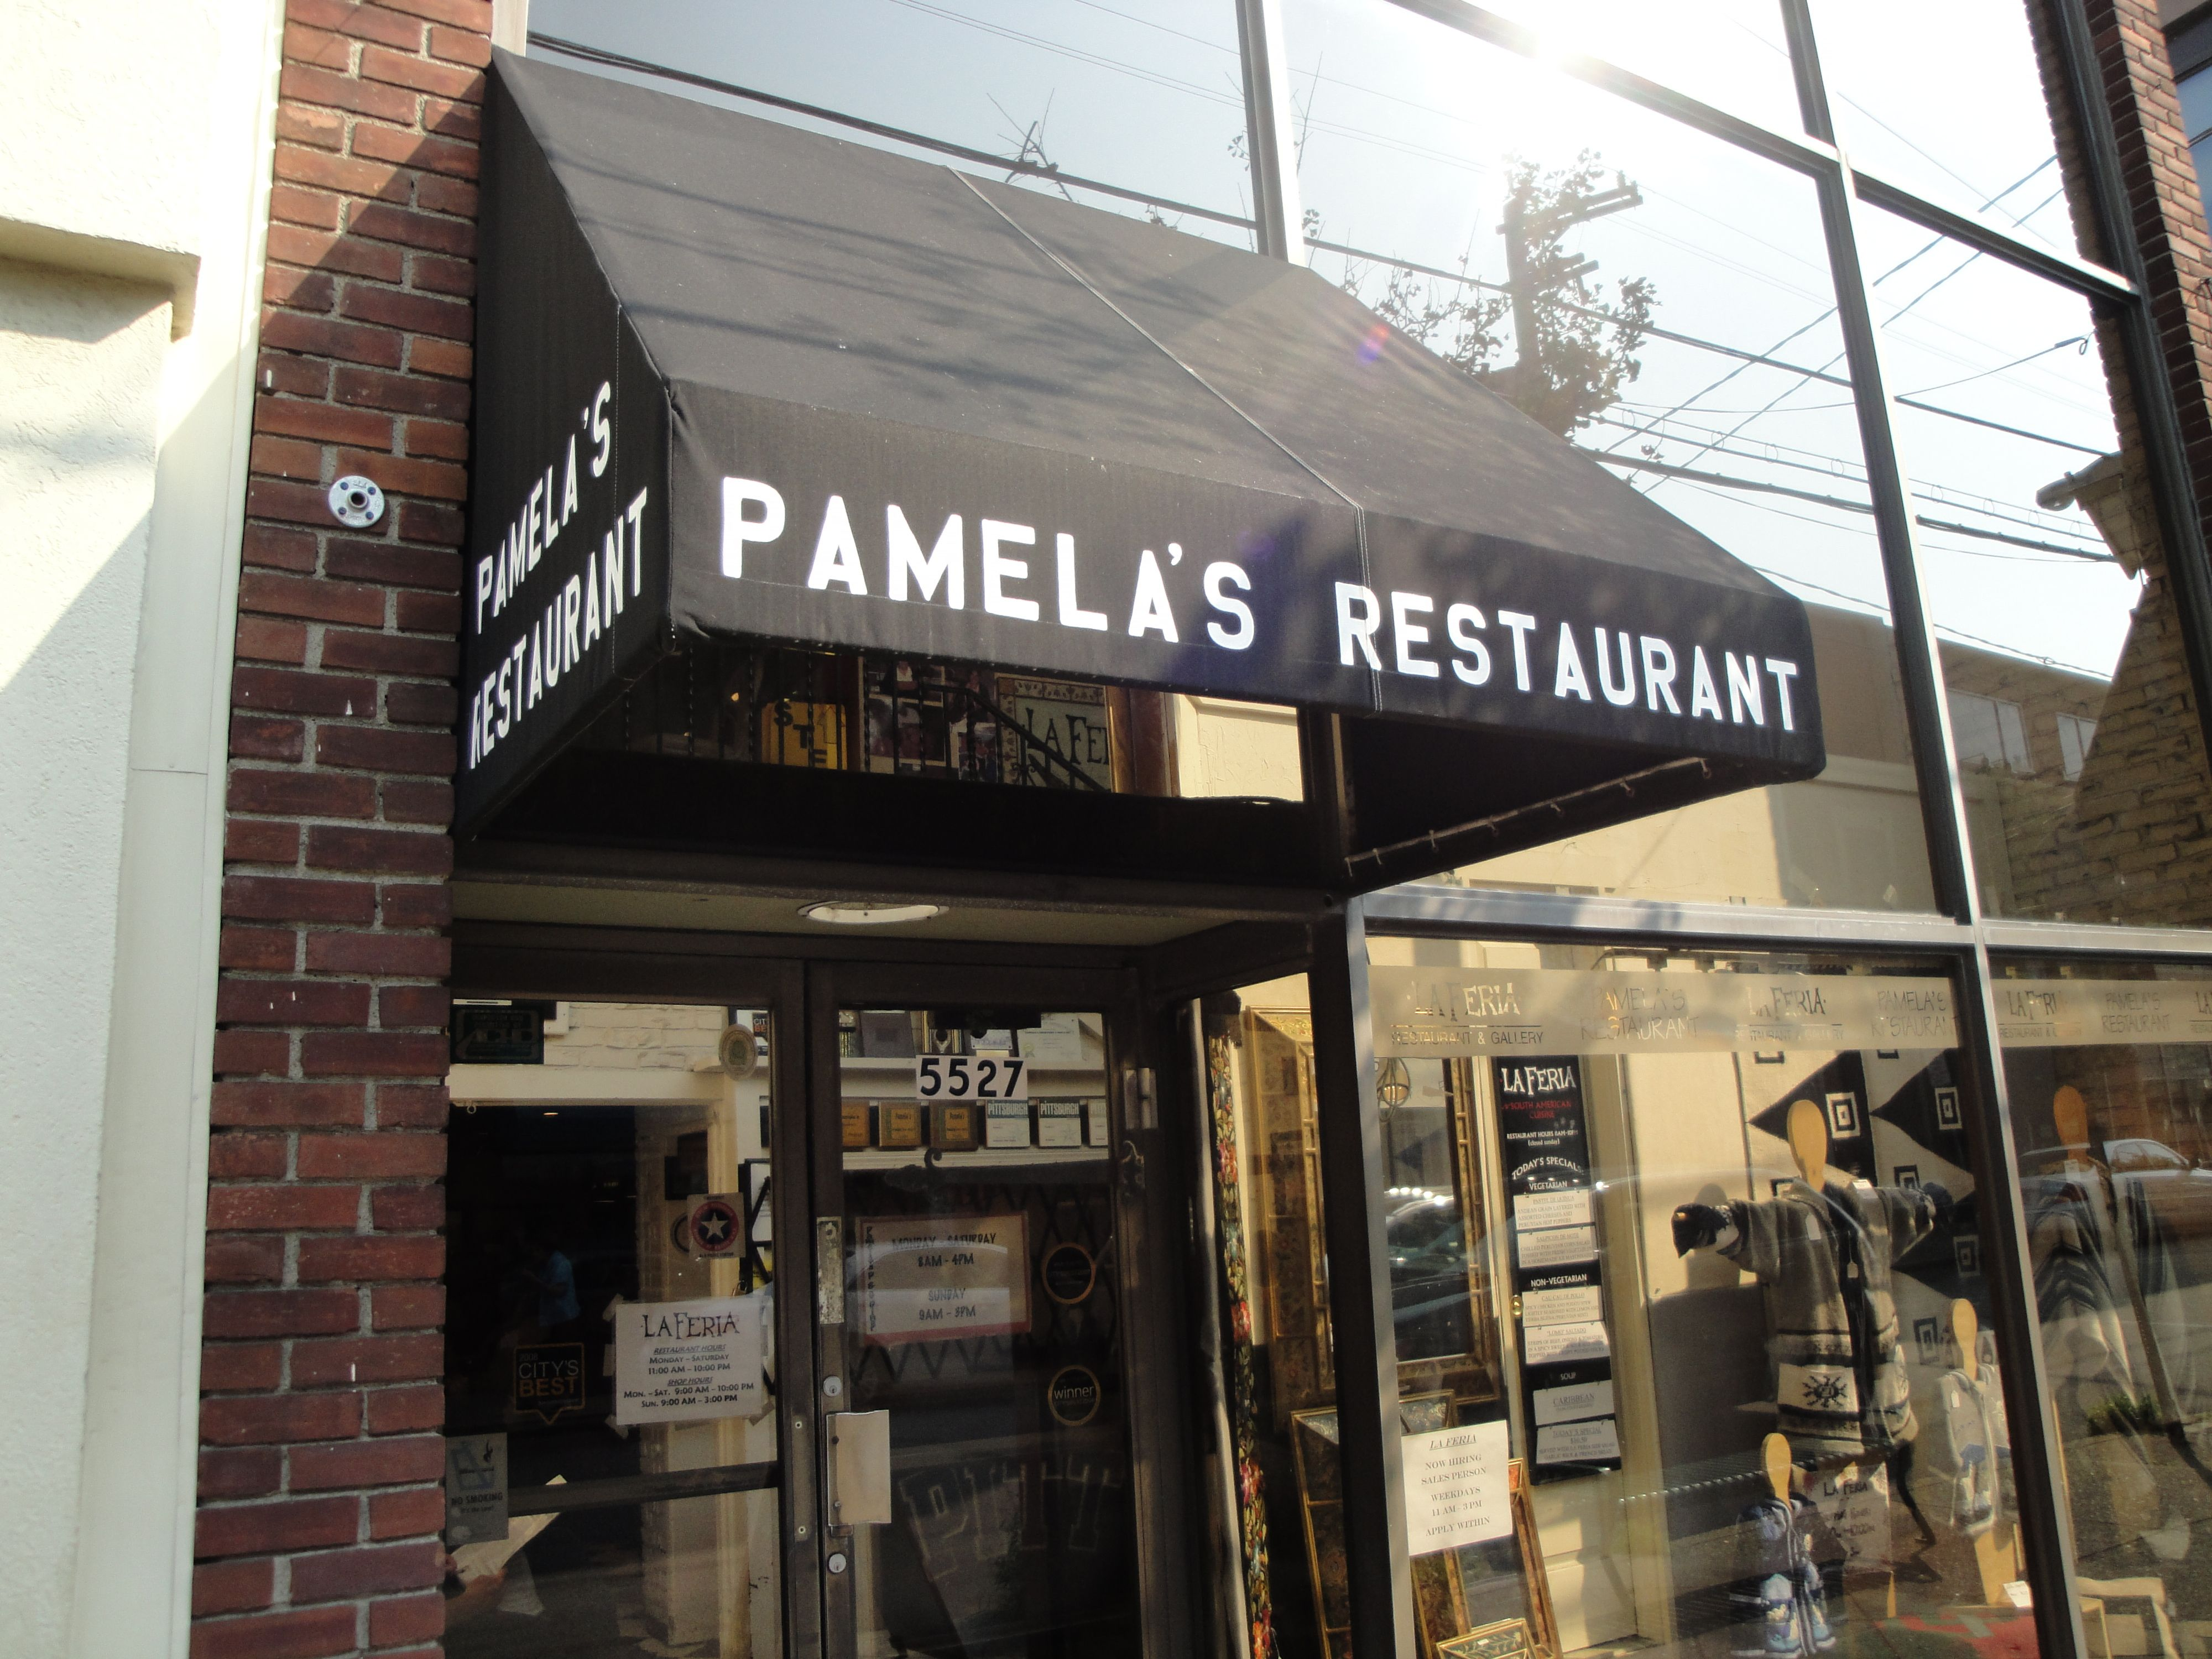 Pamela S Diner Walnut Street Shadyside Pittsburgh Pa One Of The Best Breakfasts Ever